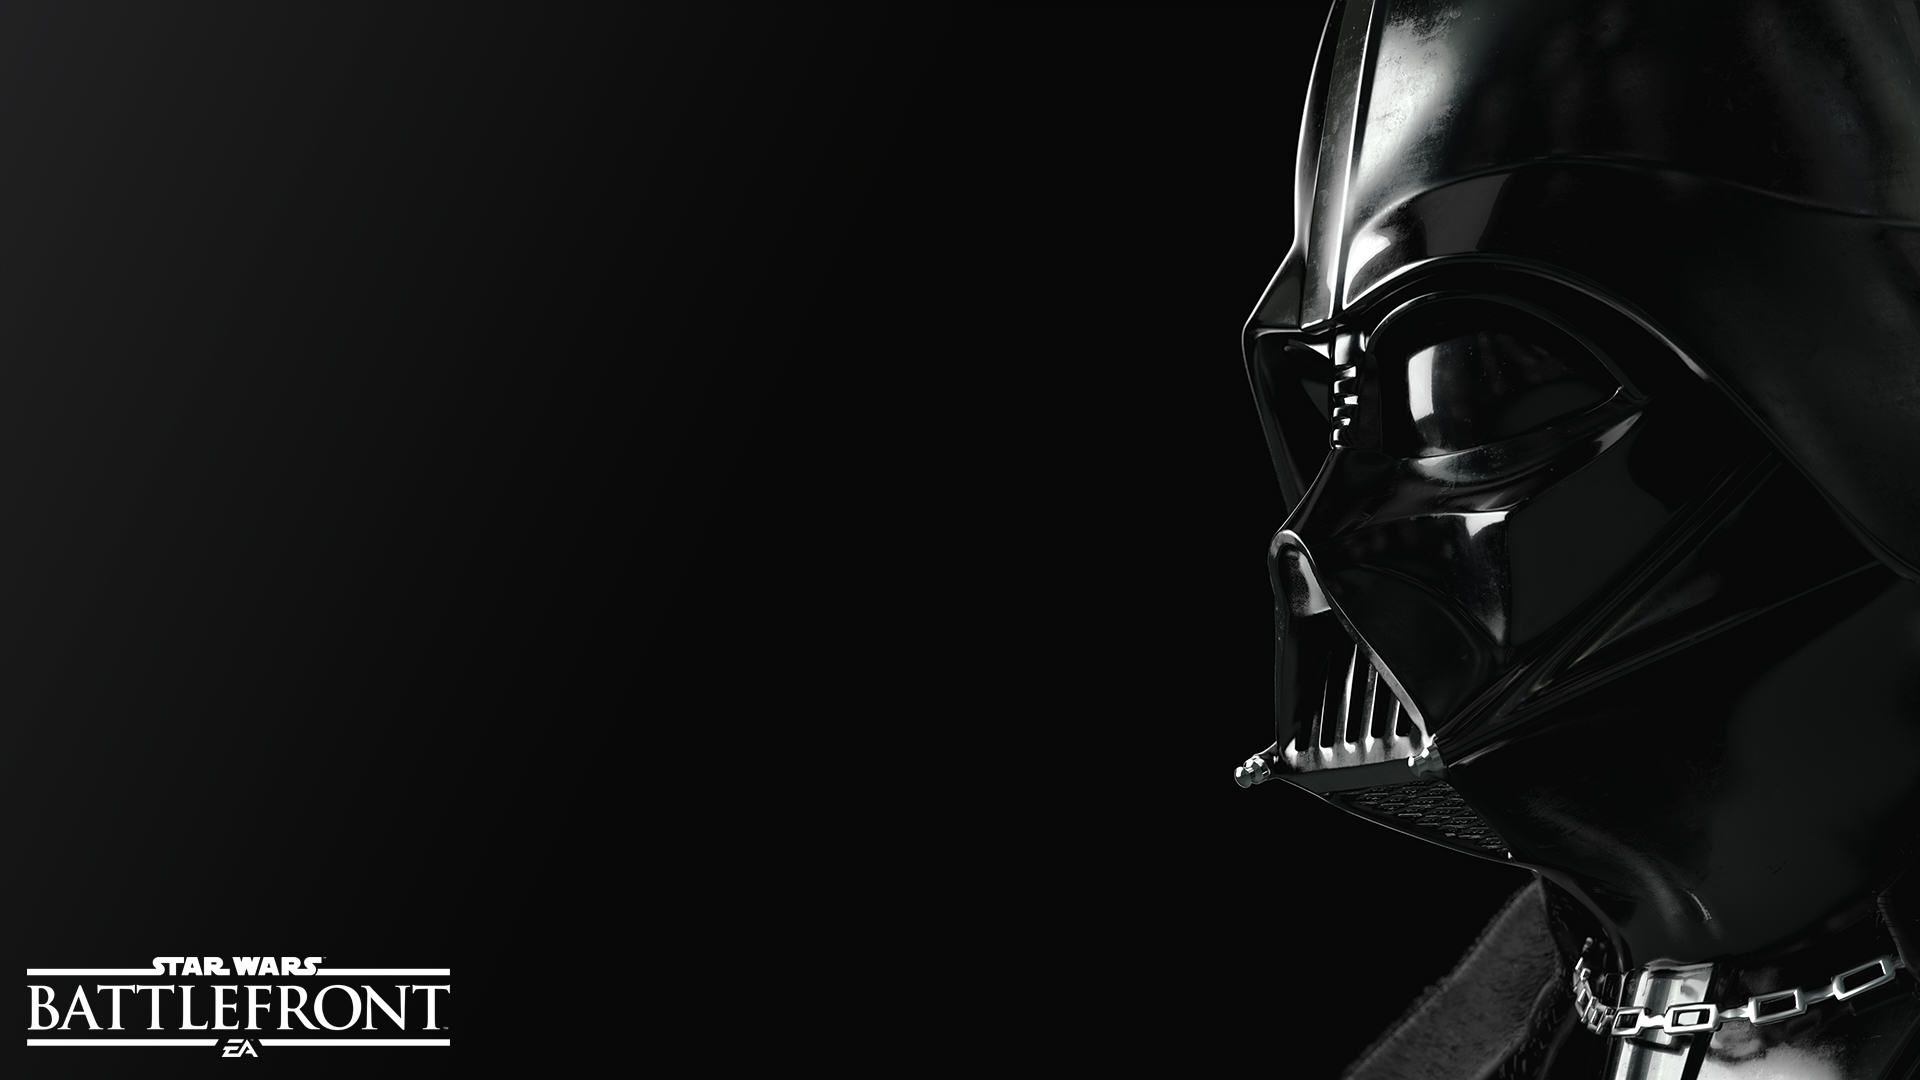 Star Wars: Battlefront Looks Stunning In These Desktop Backgrounds And Images UNILAD yfBdObb Imgur5